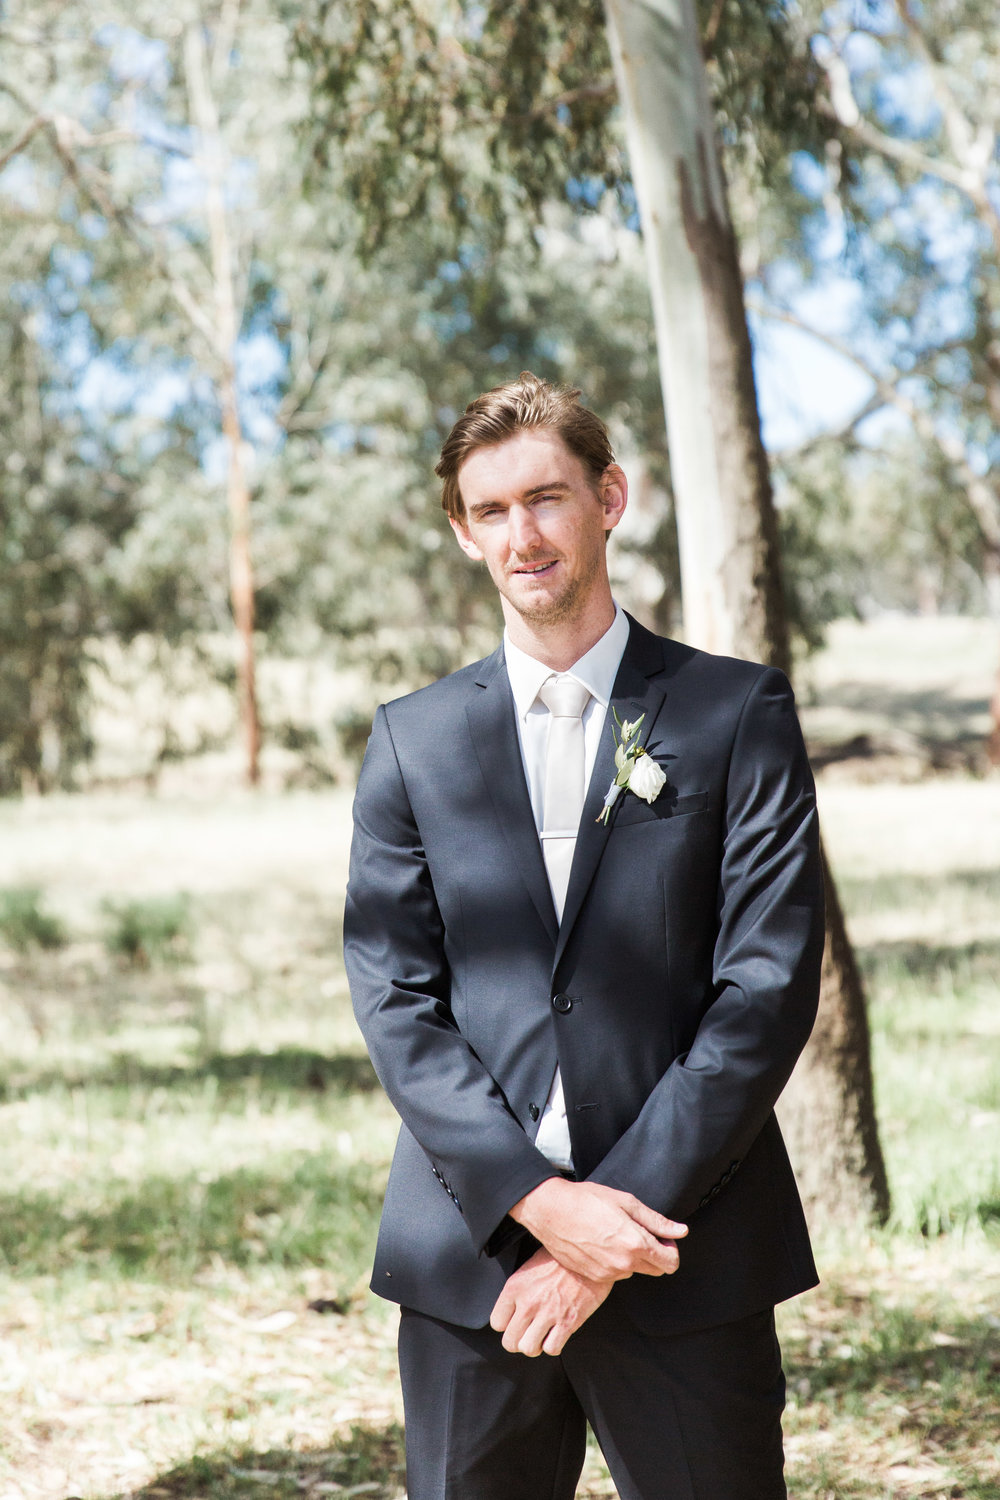 00025- Olive Tree Mediterranean Wedding in Mudgee NSW Australia Fine Art Film Wedding Lifestyle Photographer Sheri McMahon_.jpg